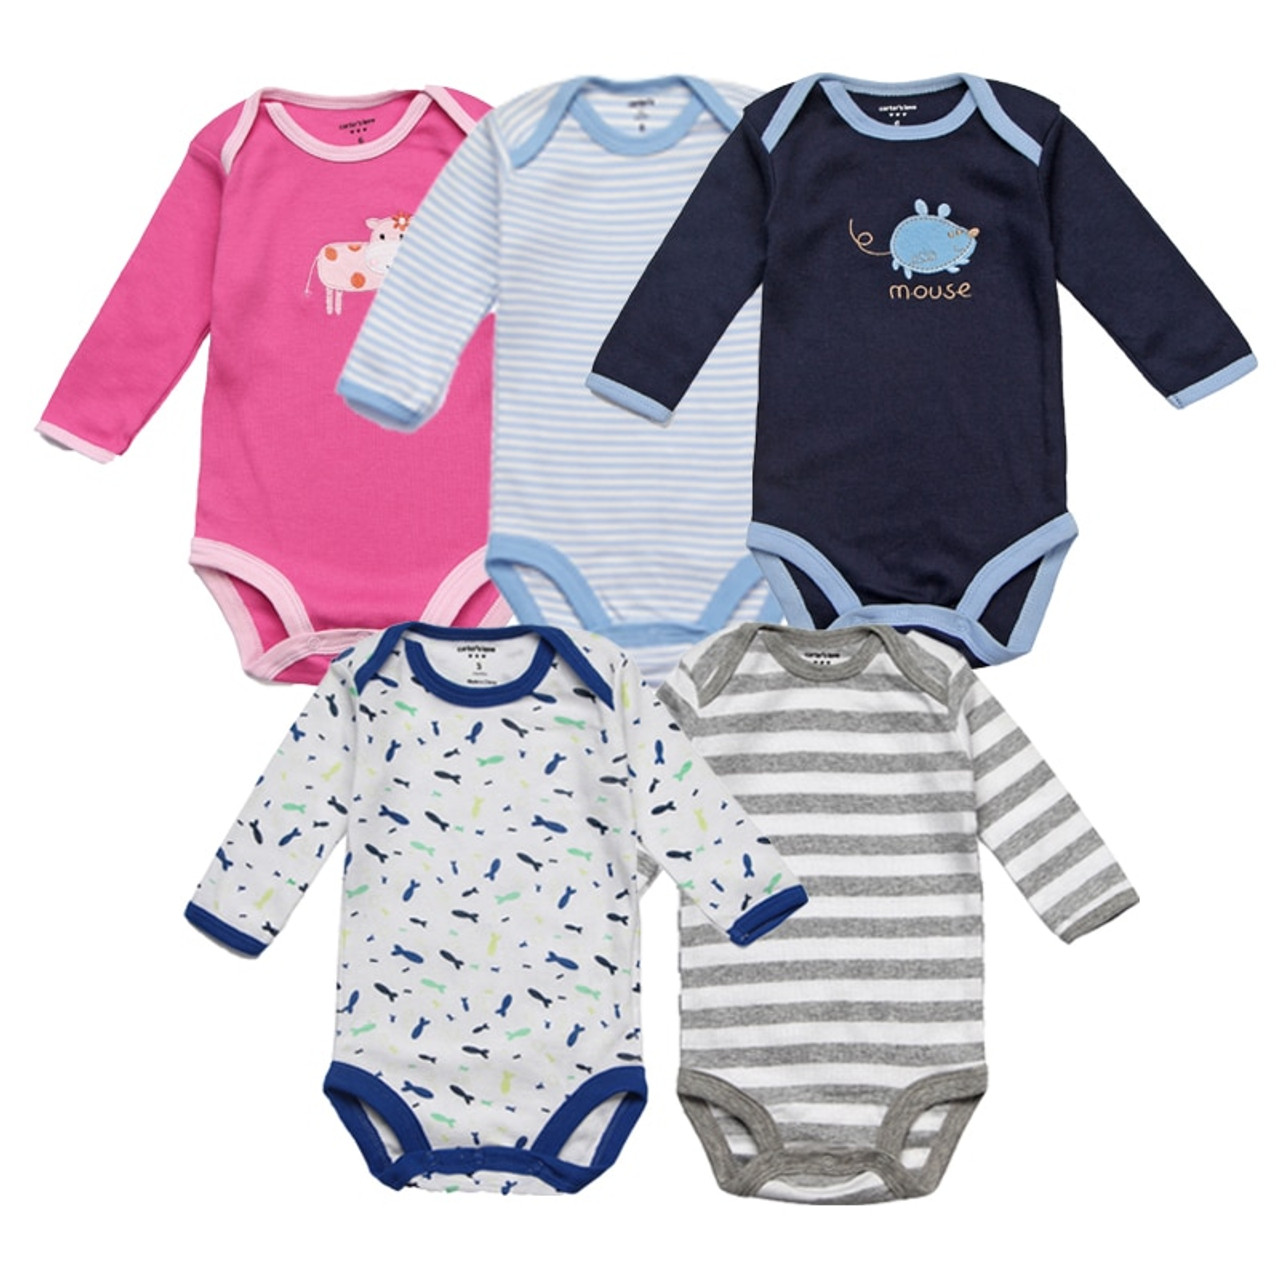 c8e7926c970b 5Pcs lot Baby Rompers Spring Baby Boy Clothes Cotton Baby Girl ...